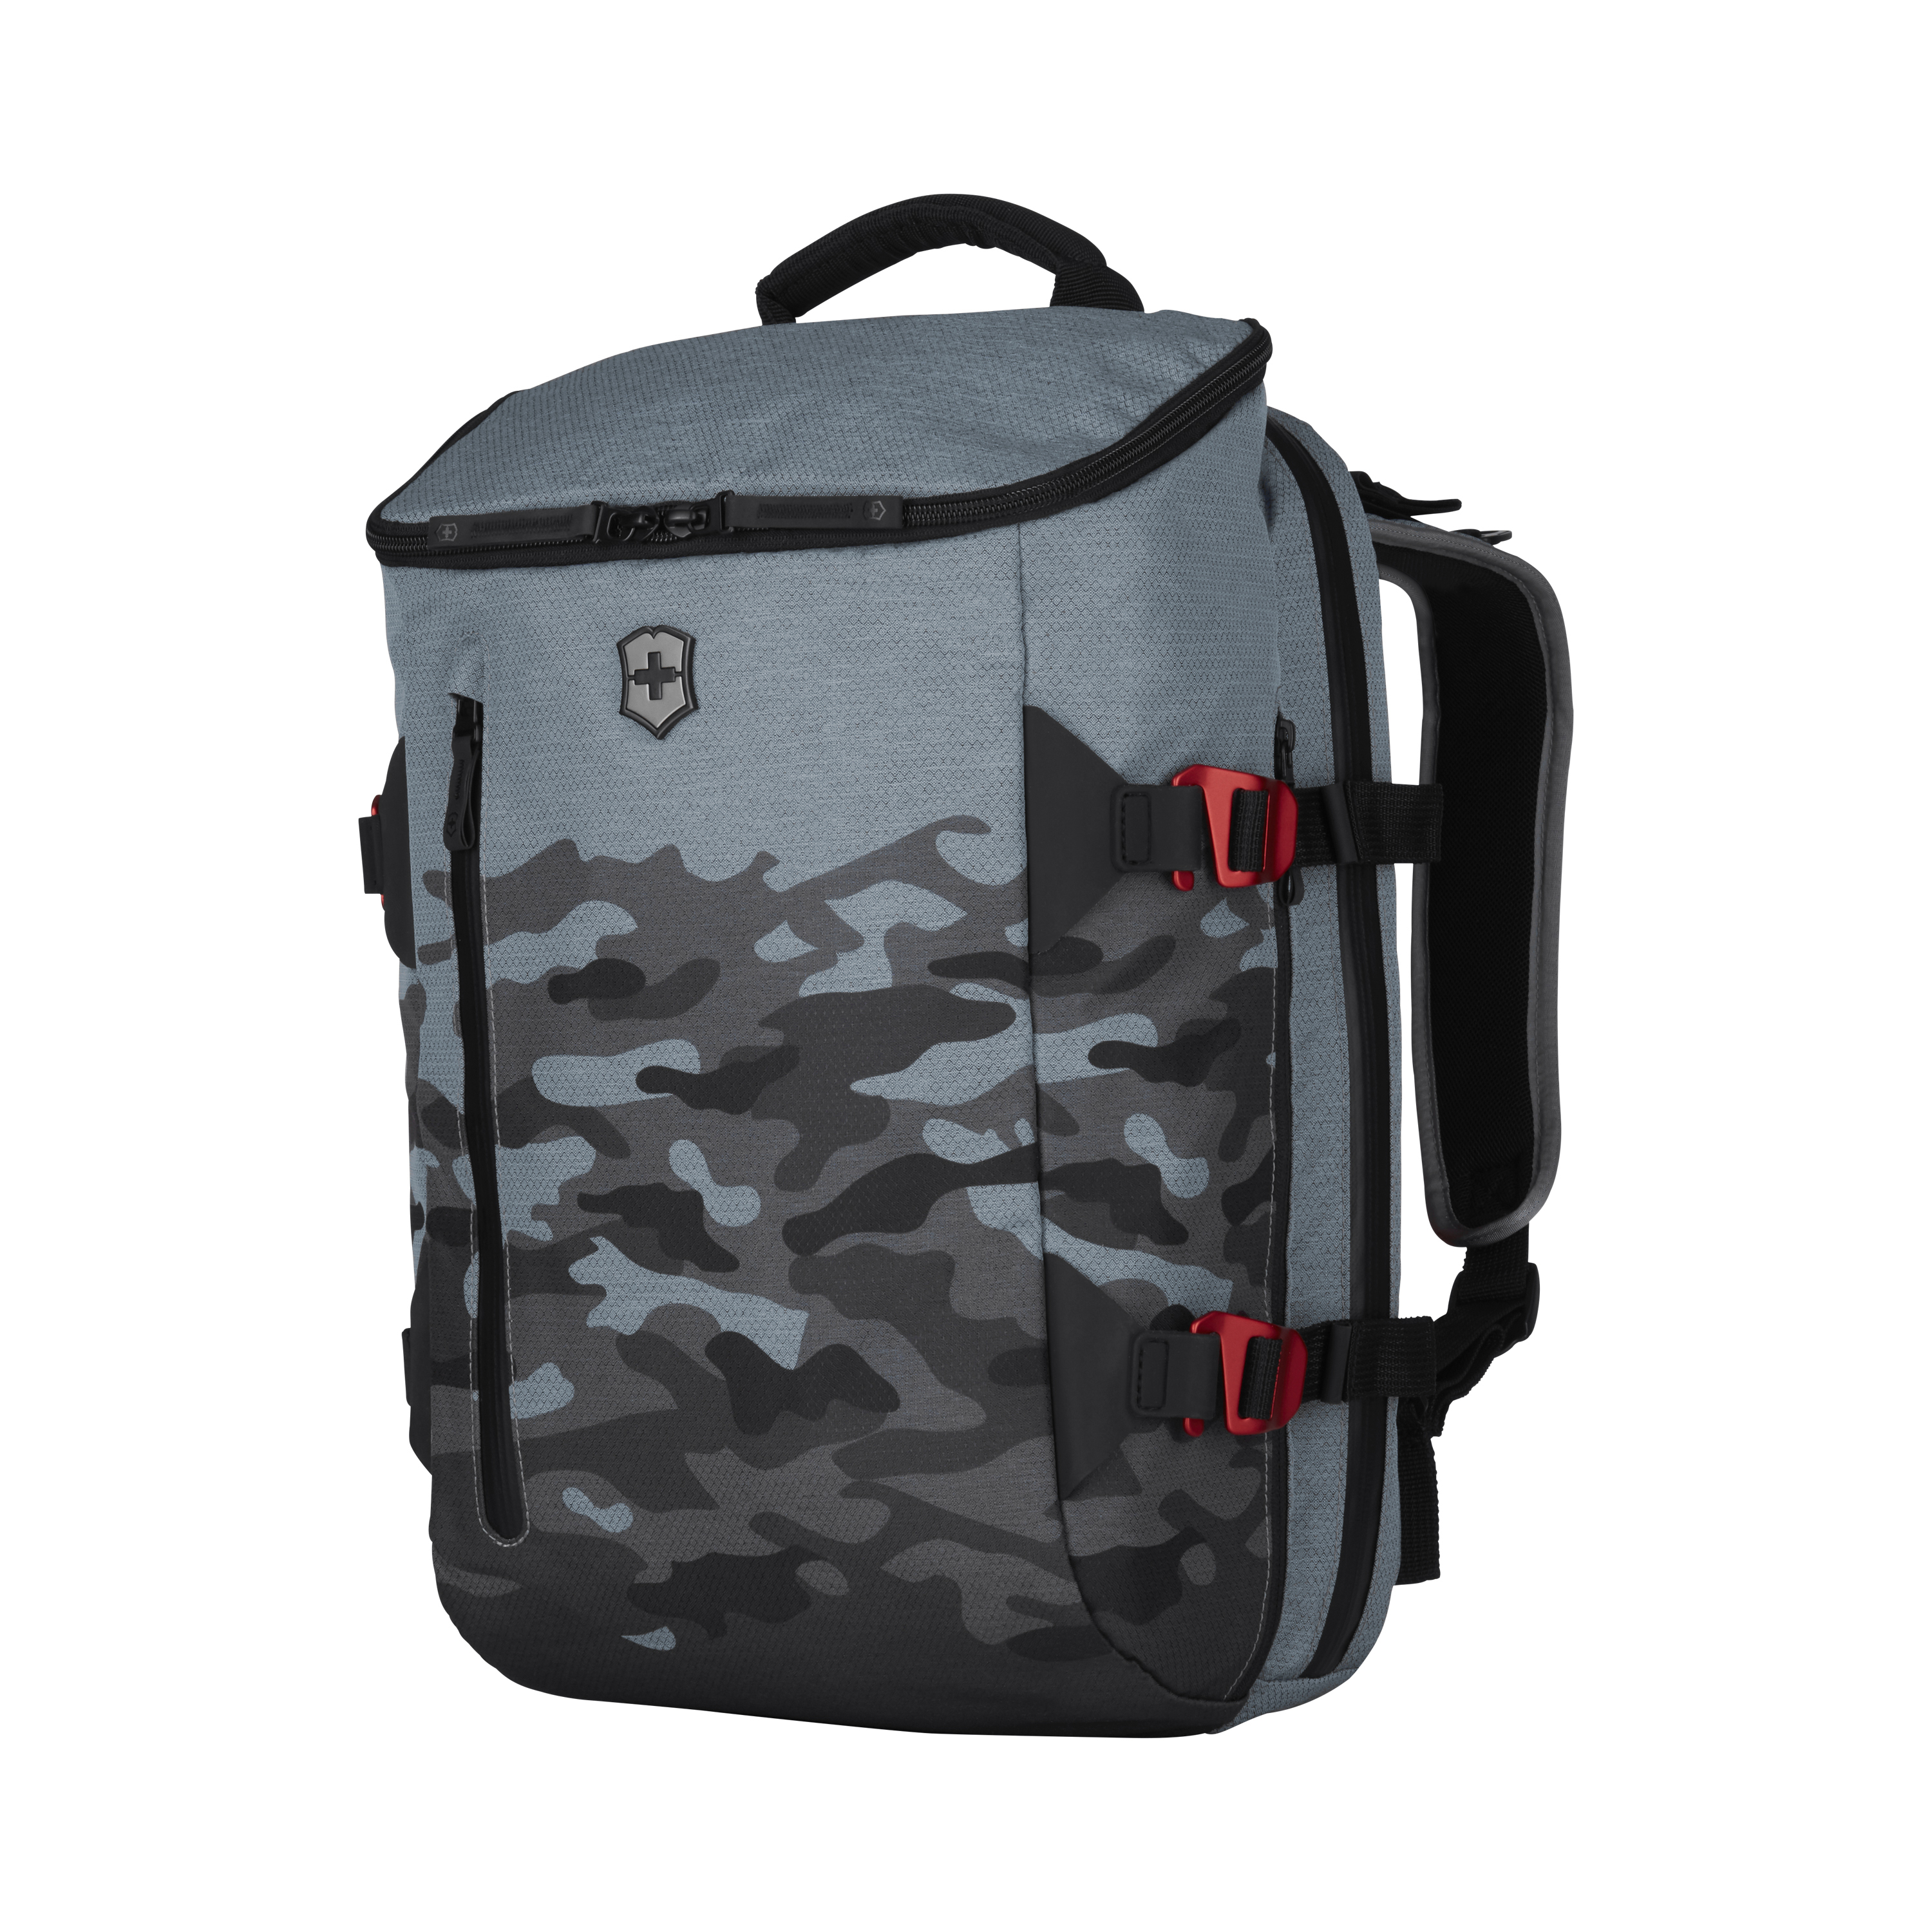 Vx Touring, Laptop Backpack 15, Sage Camo